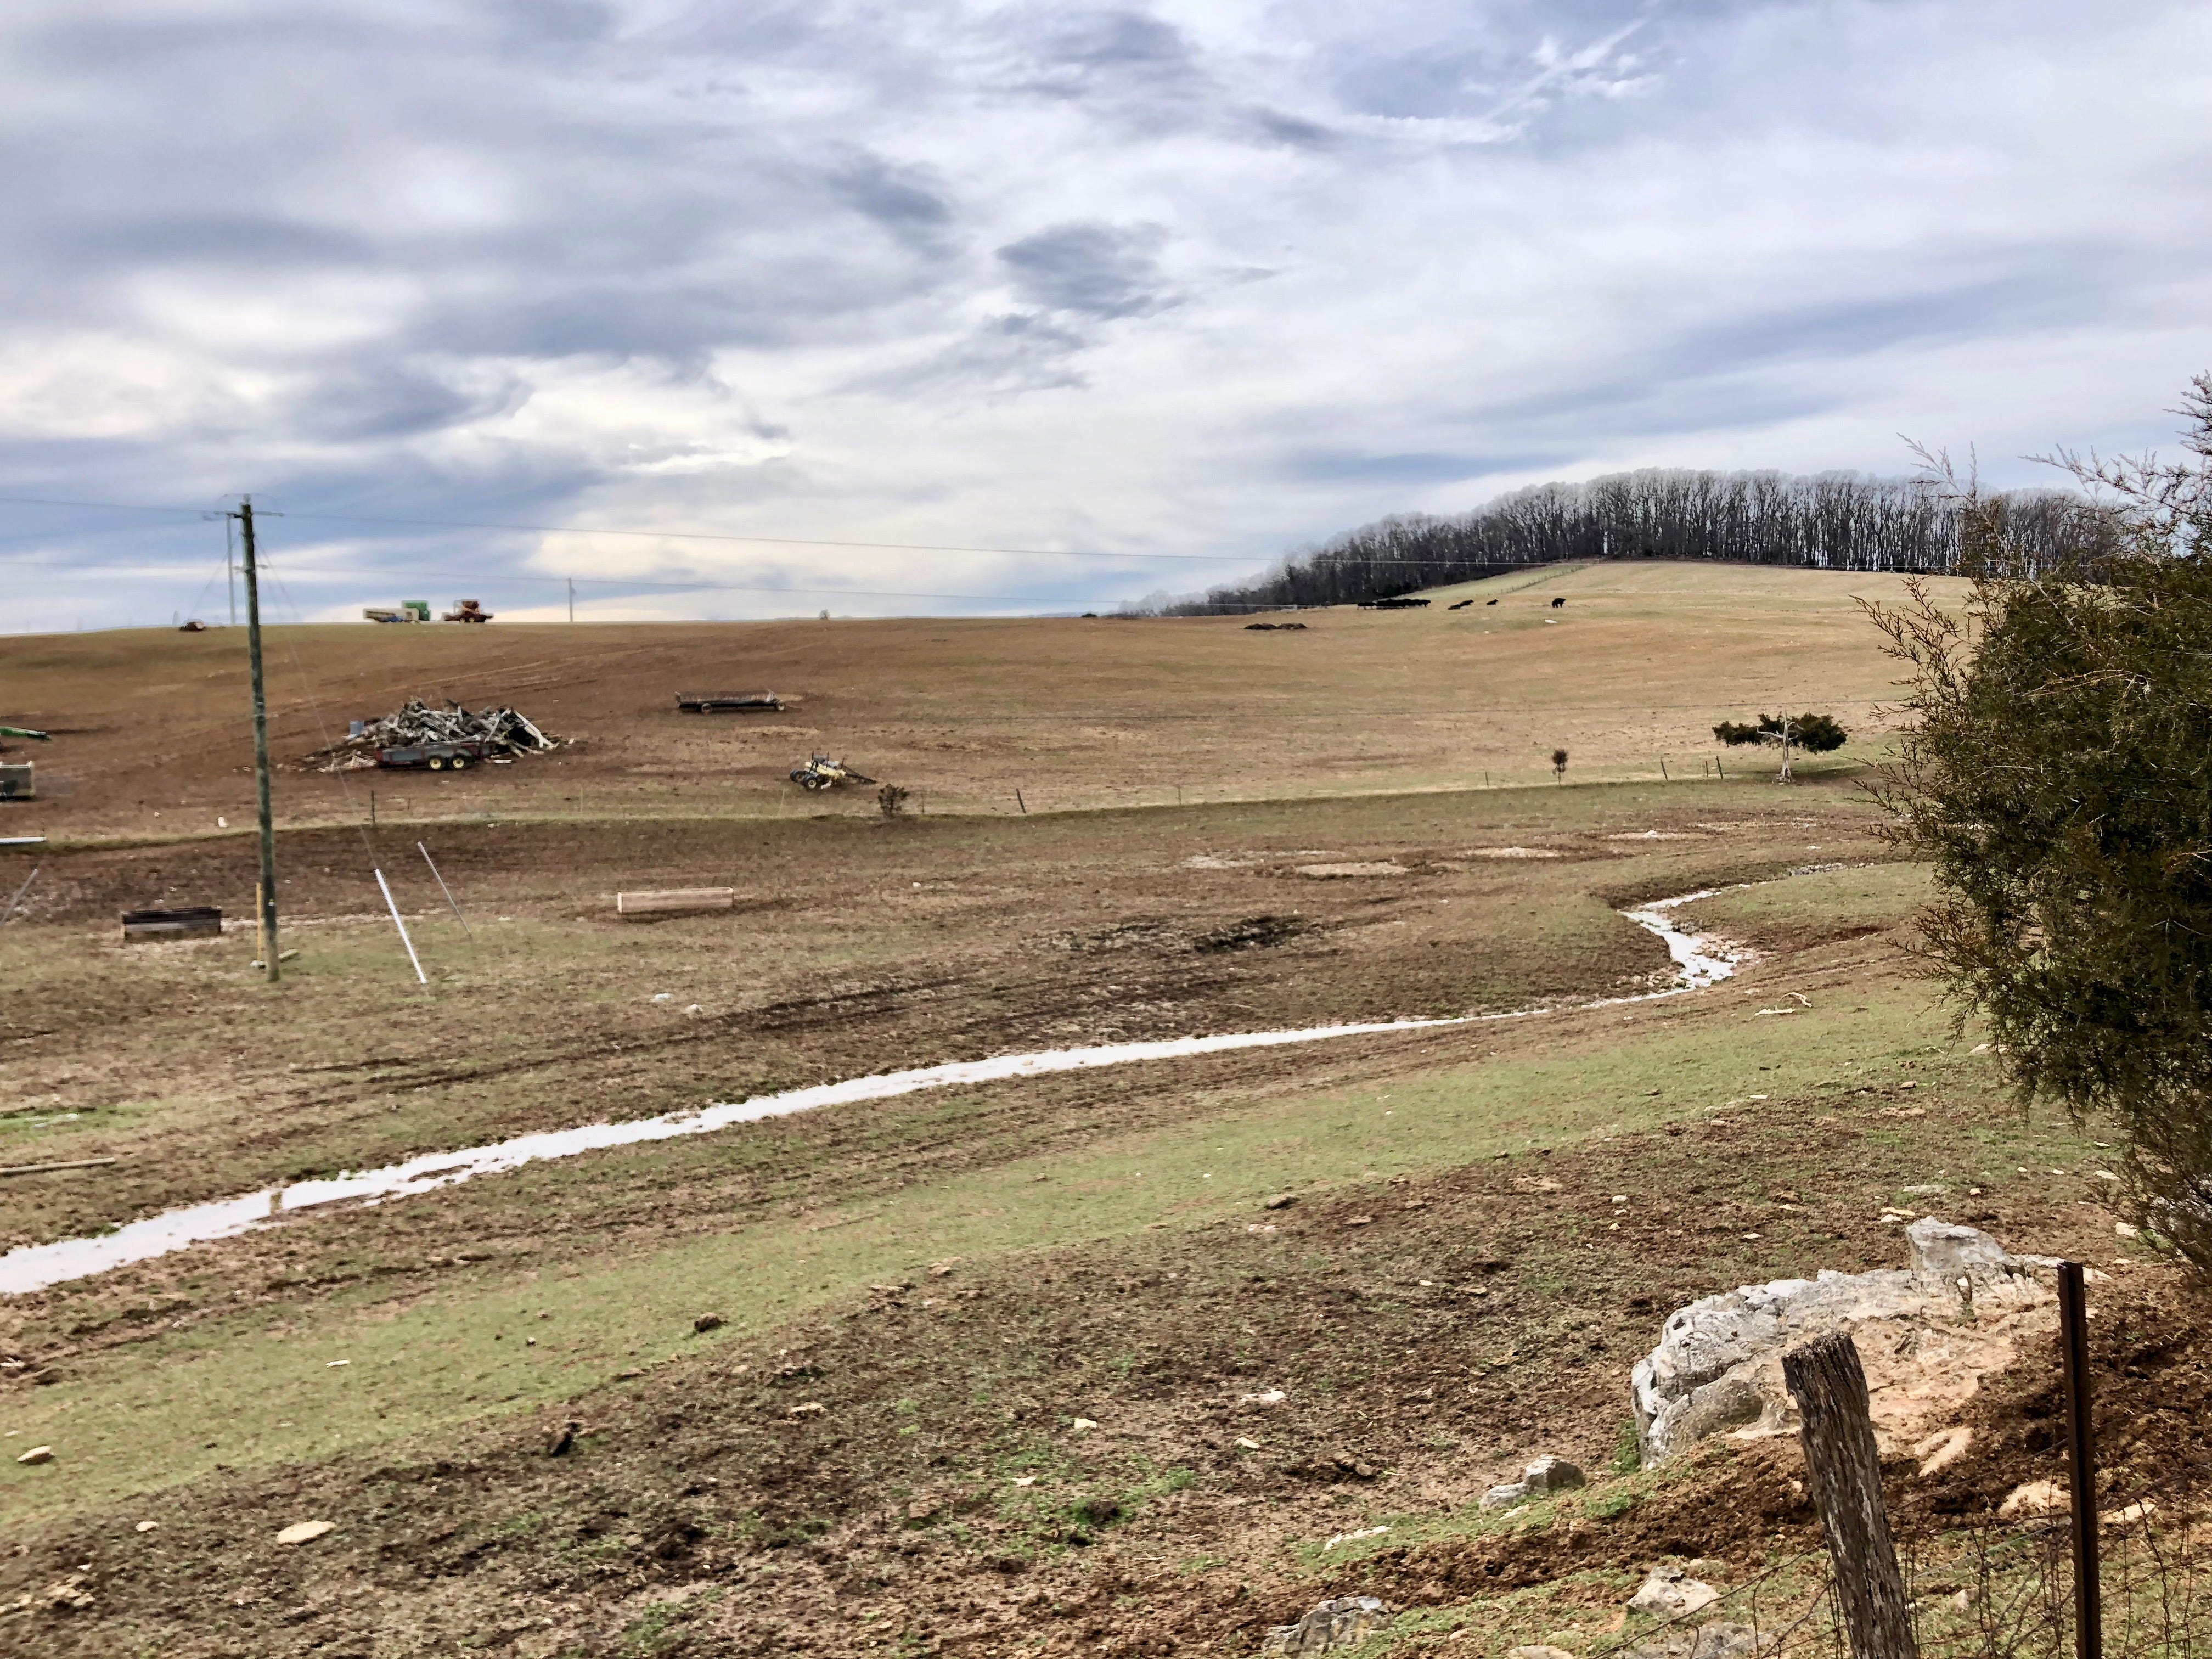 Augusta County farmer Scott Burtner has struggled with flooded fields and sick animals in spring 2019 following an exceptionally wet fall and winter.